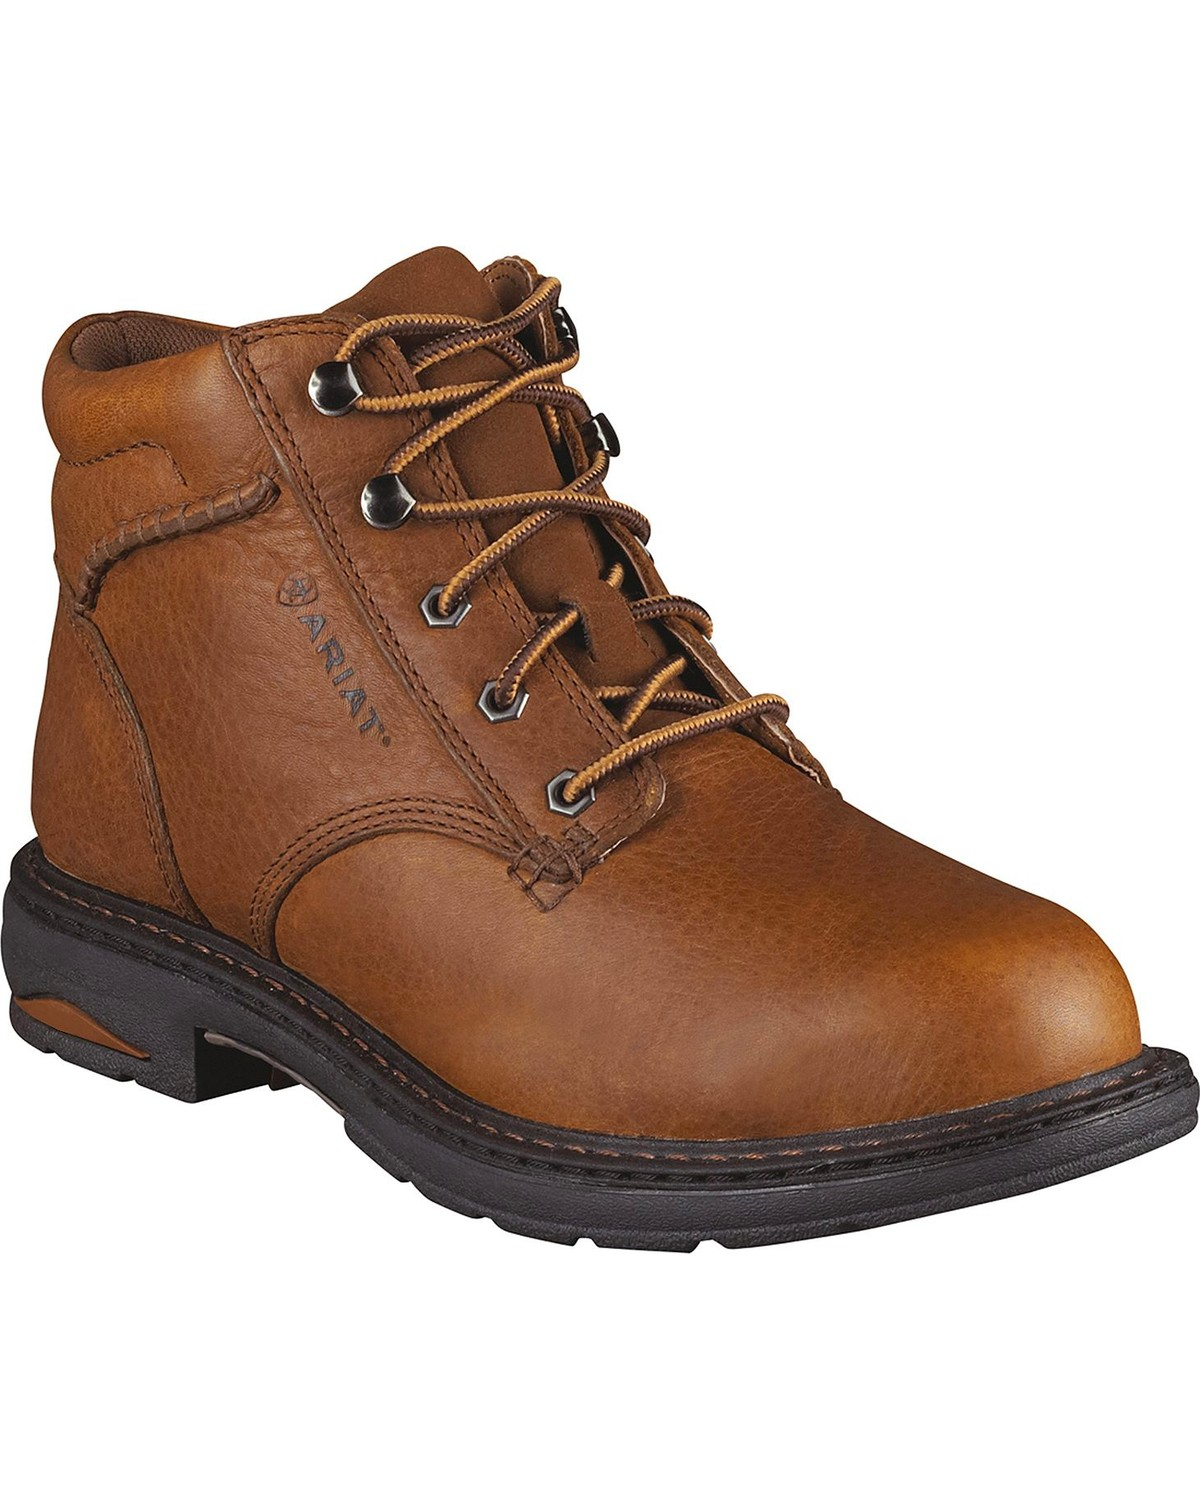 The 10 best boots for men, in every price range.